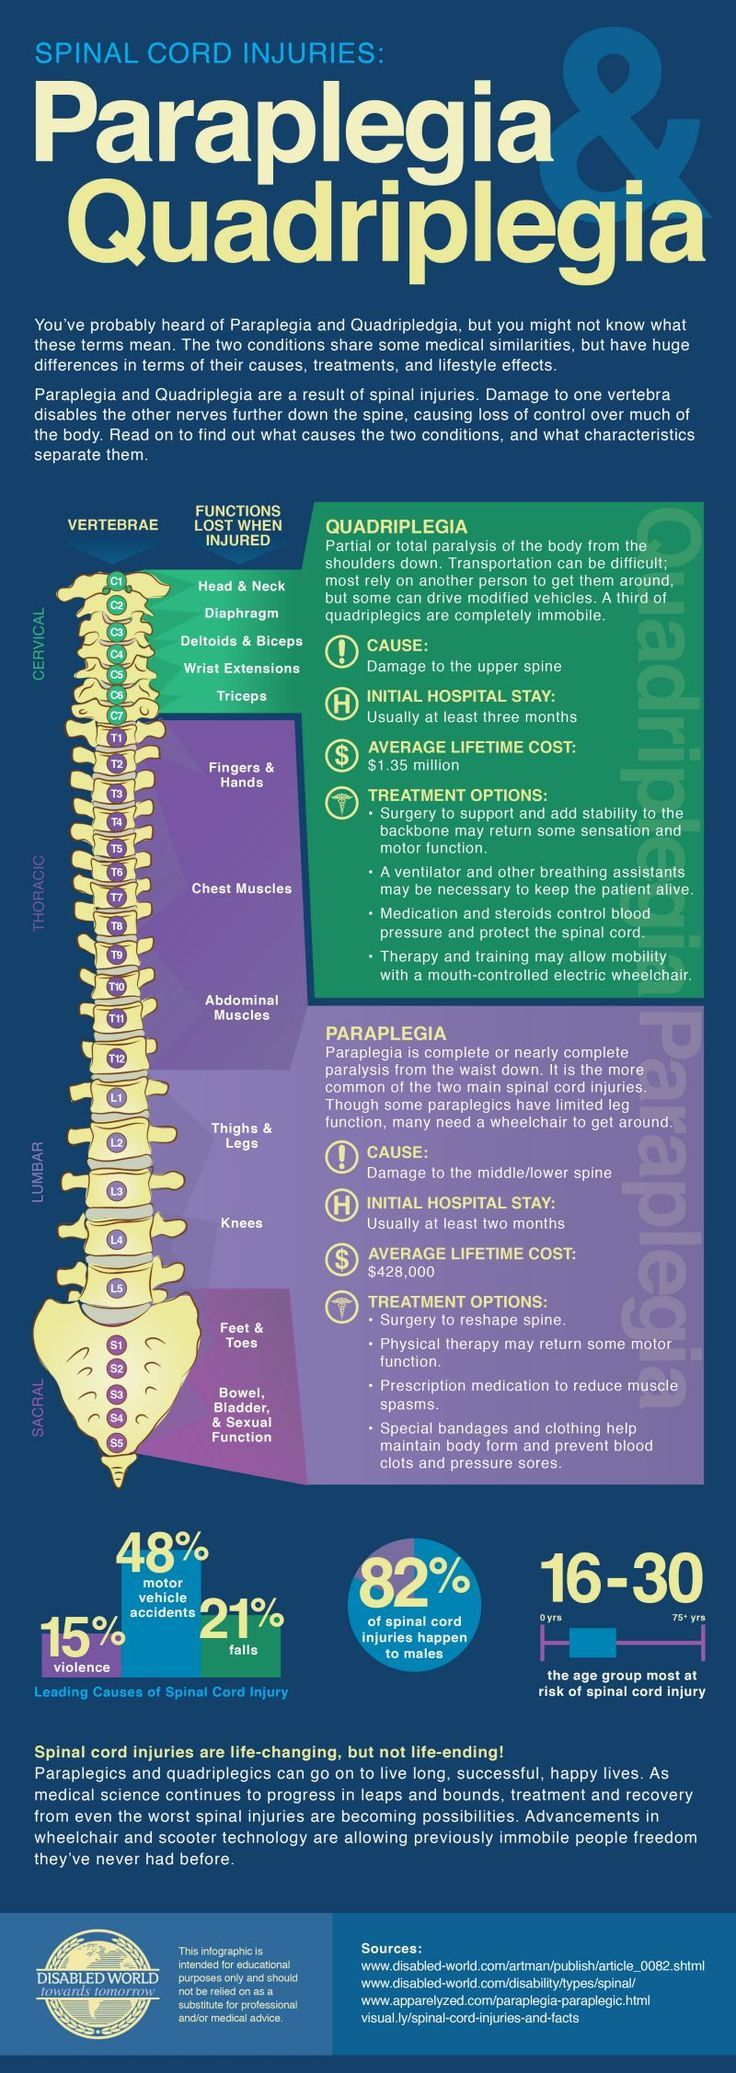 Quick reference to share material about spinal cord injury (SCI). #Nursing #NursingStudent